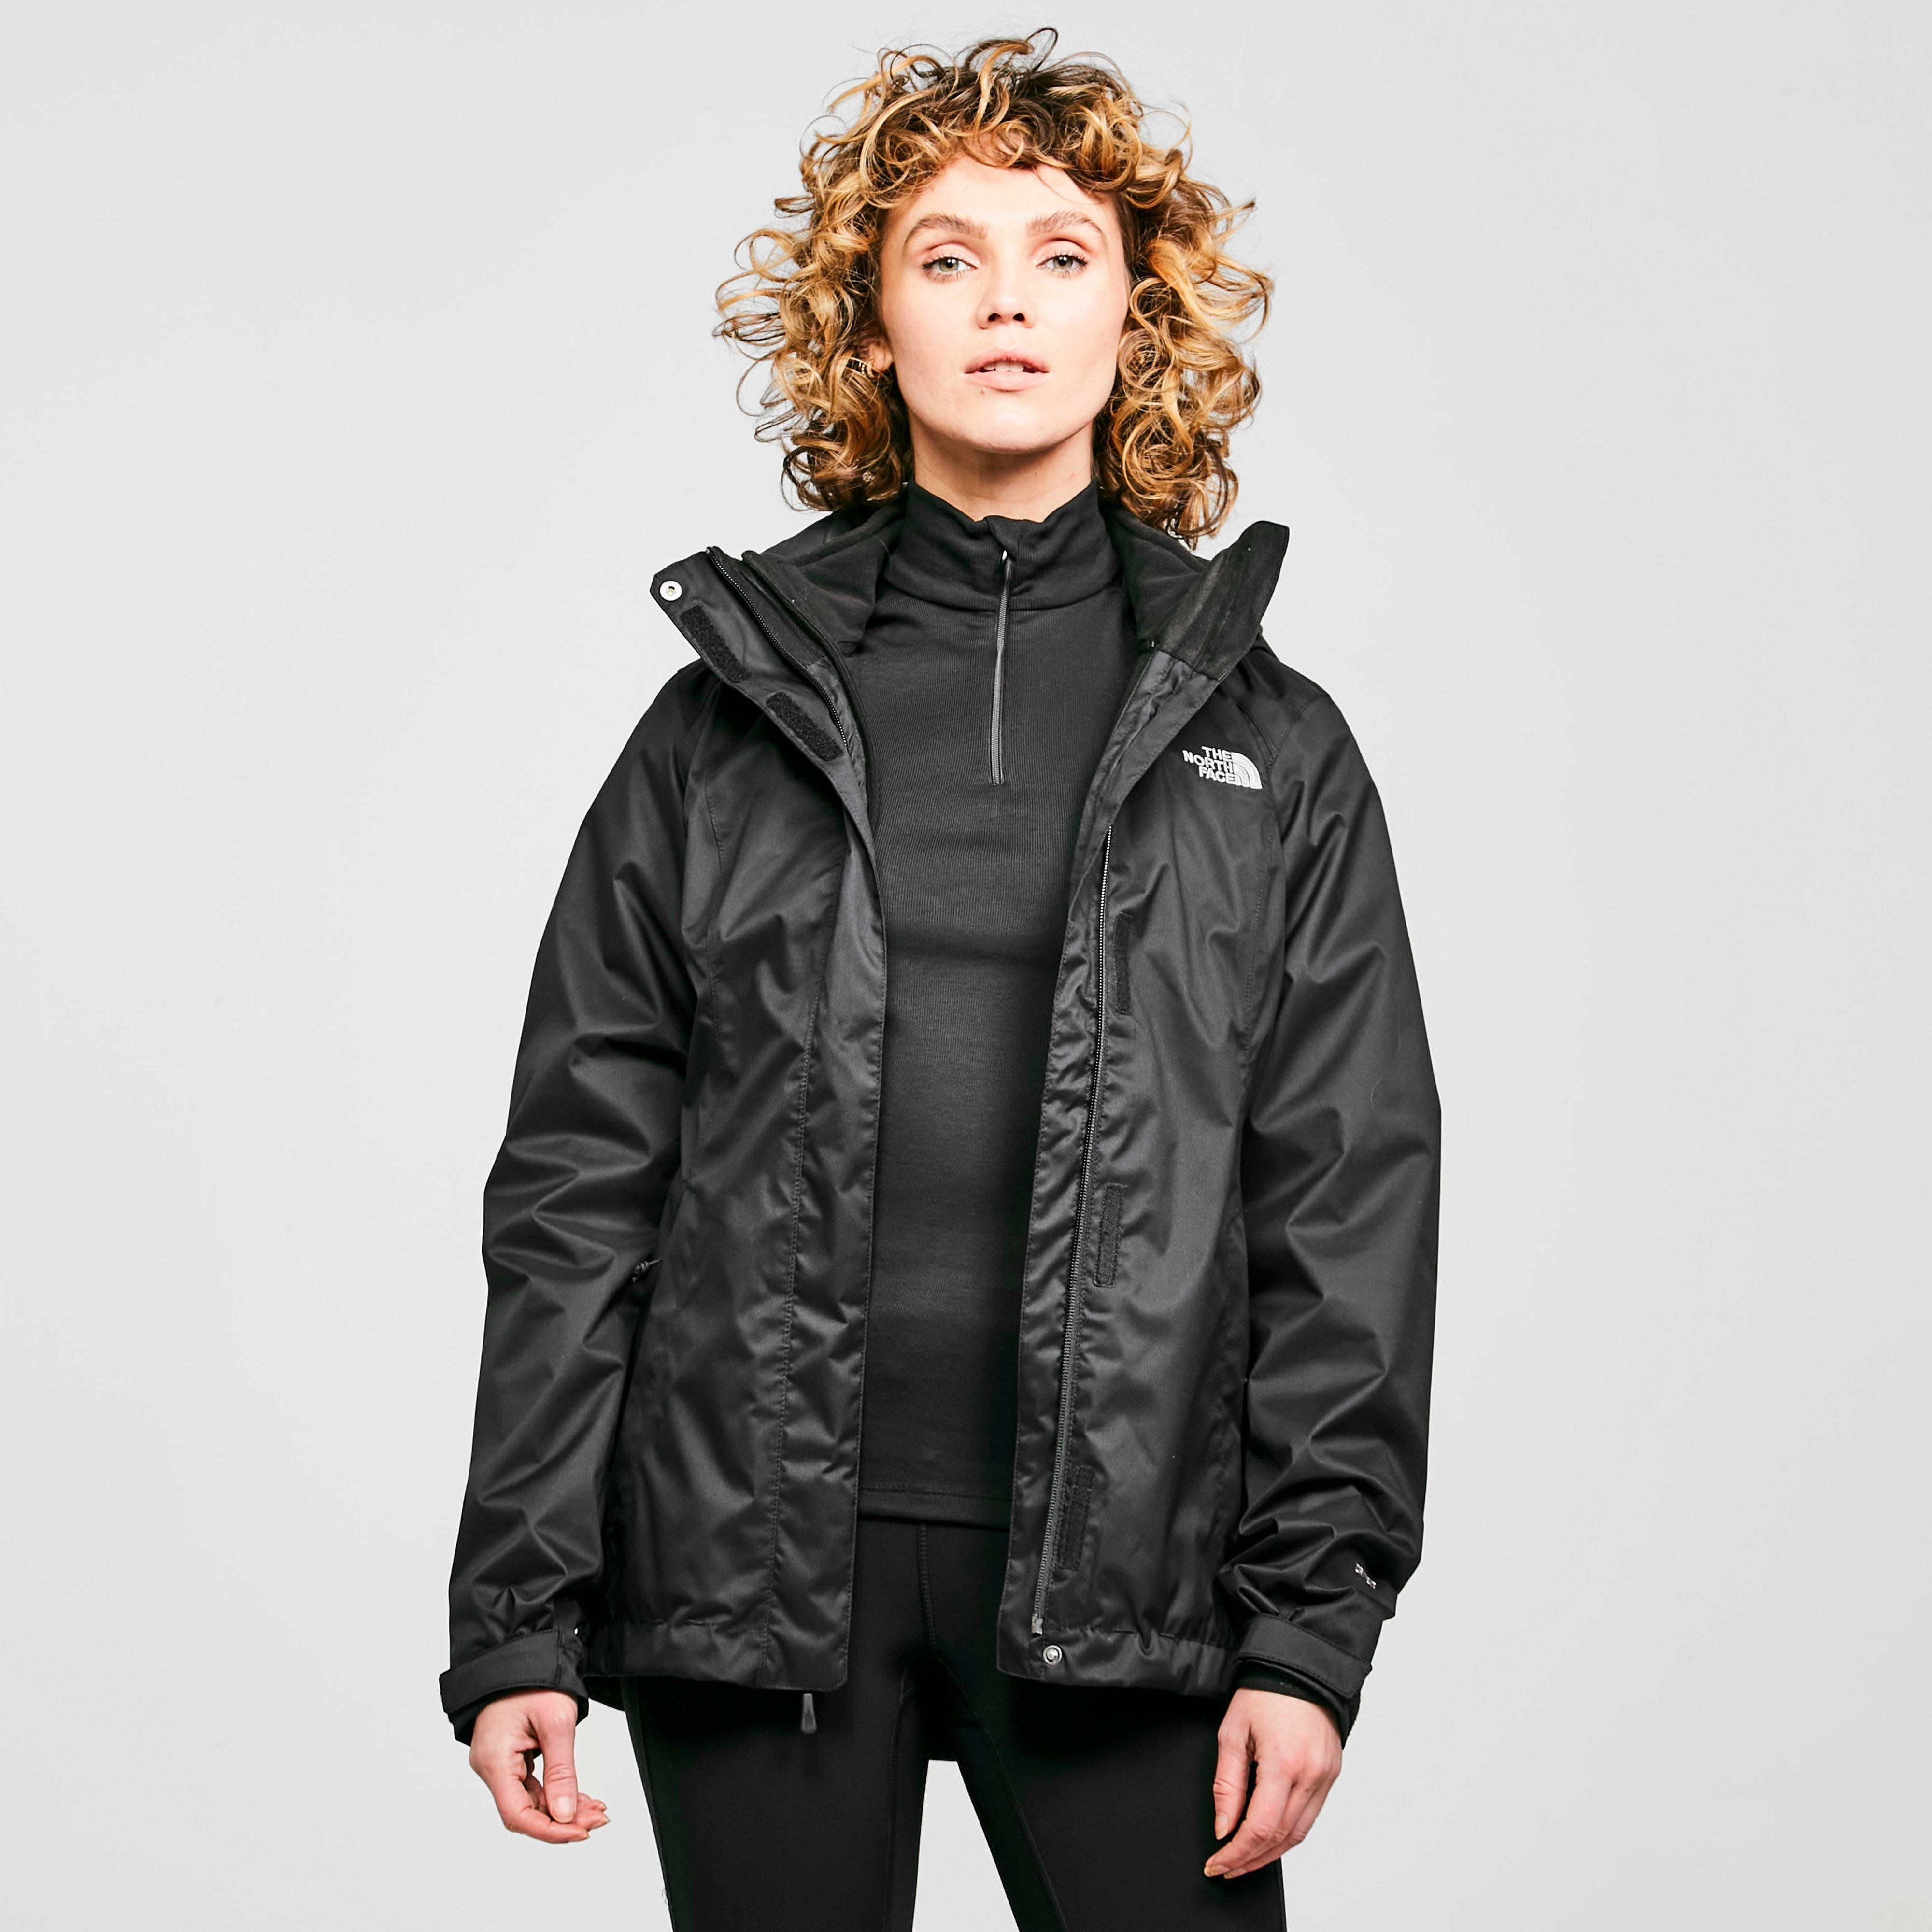 THE NORTH FACE Women's Evolve II Triclimate® 3-in-1 Jacket